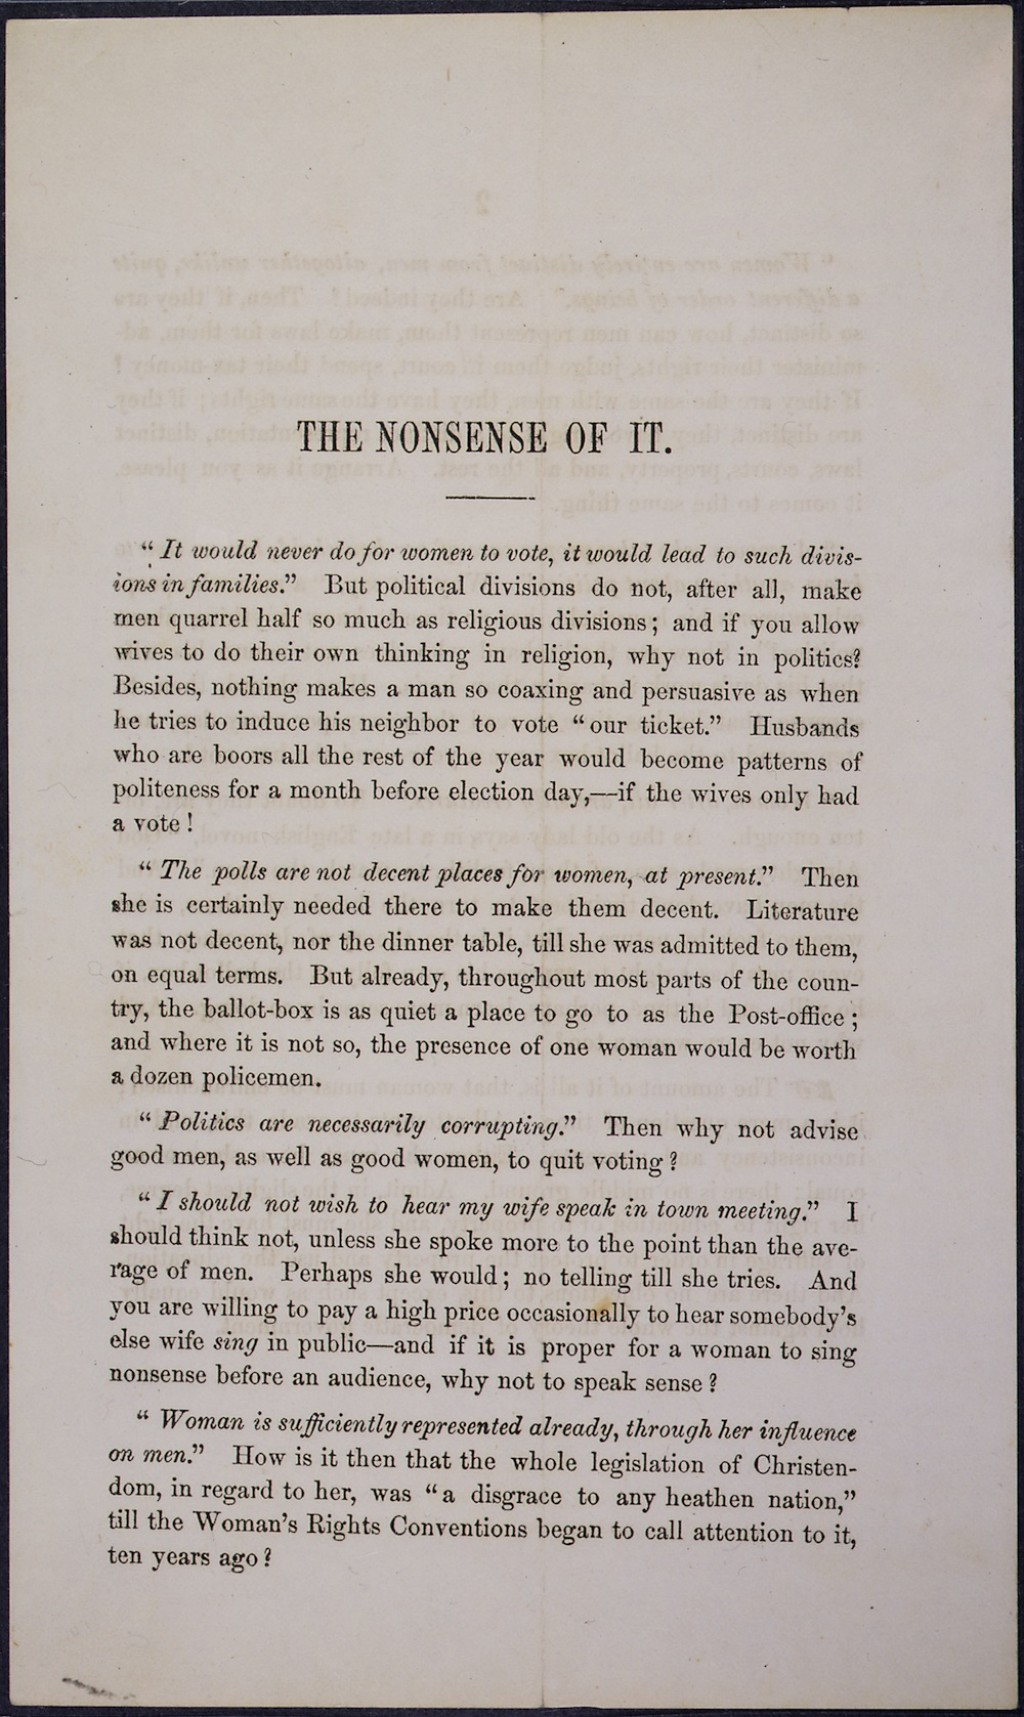 005 Why Is It Important To Vote Essay Contest Suffragepamphlet1final Crop Original Top Large